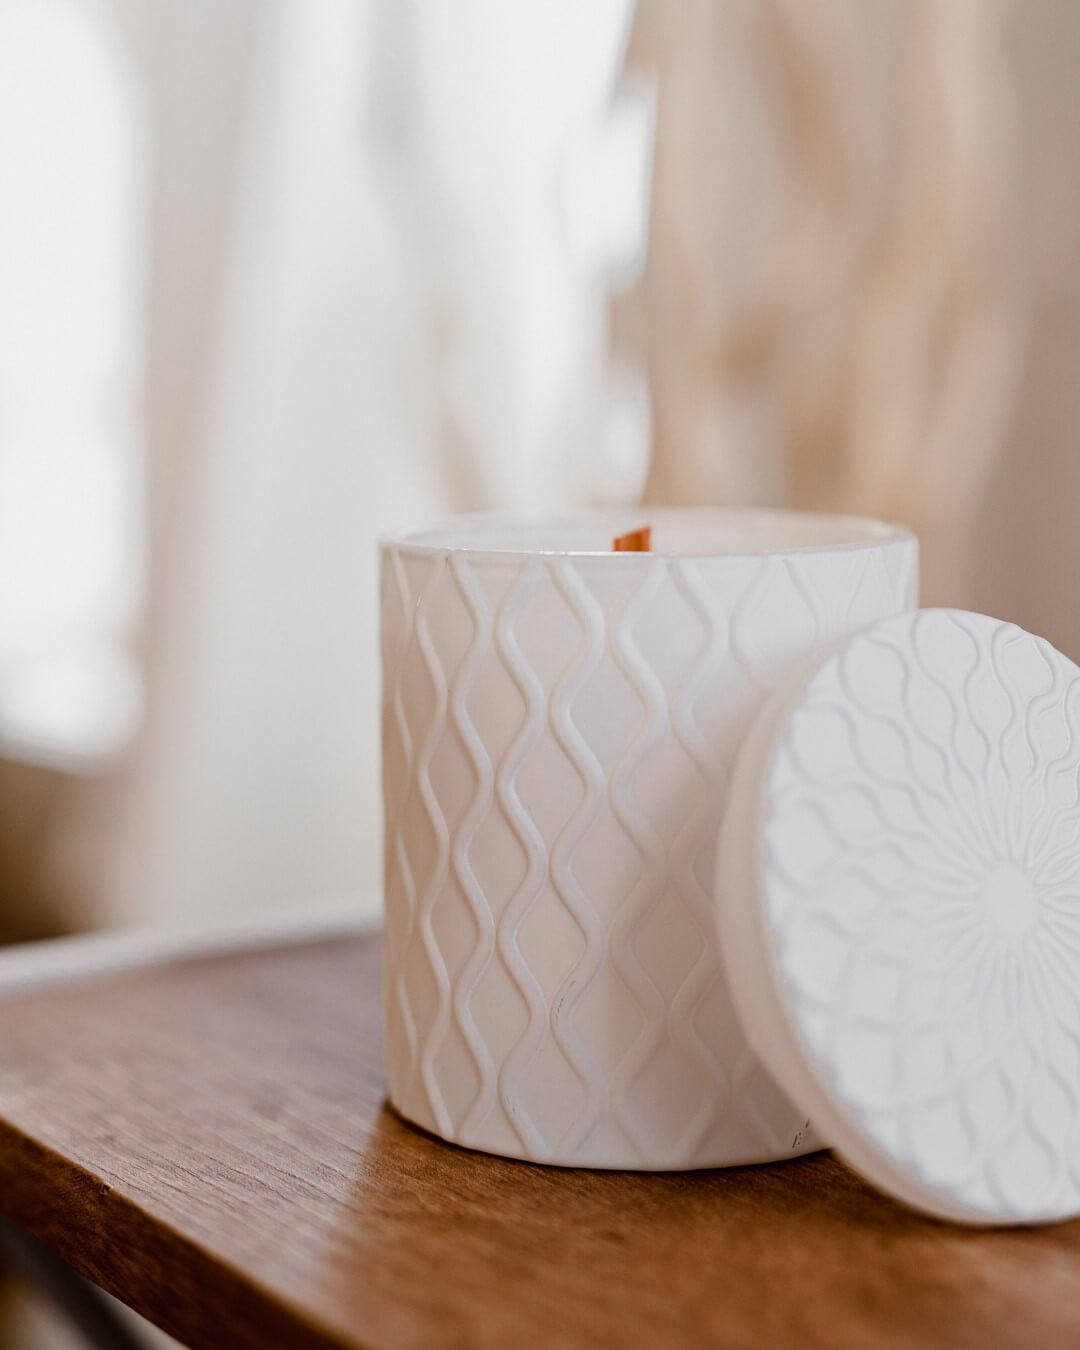 limited edition matte white wave jar Crackling wood wick candle